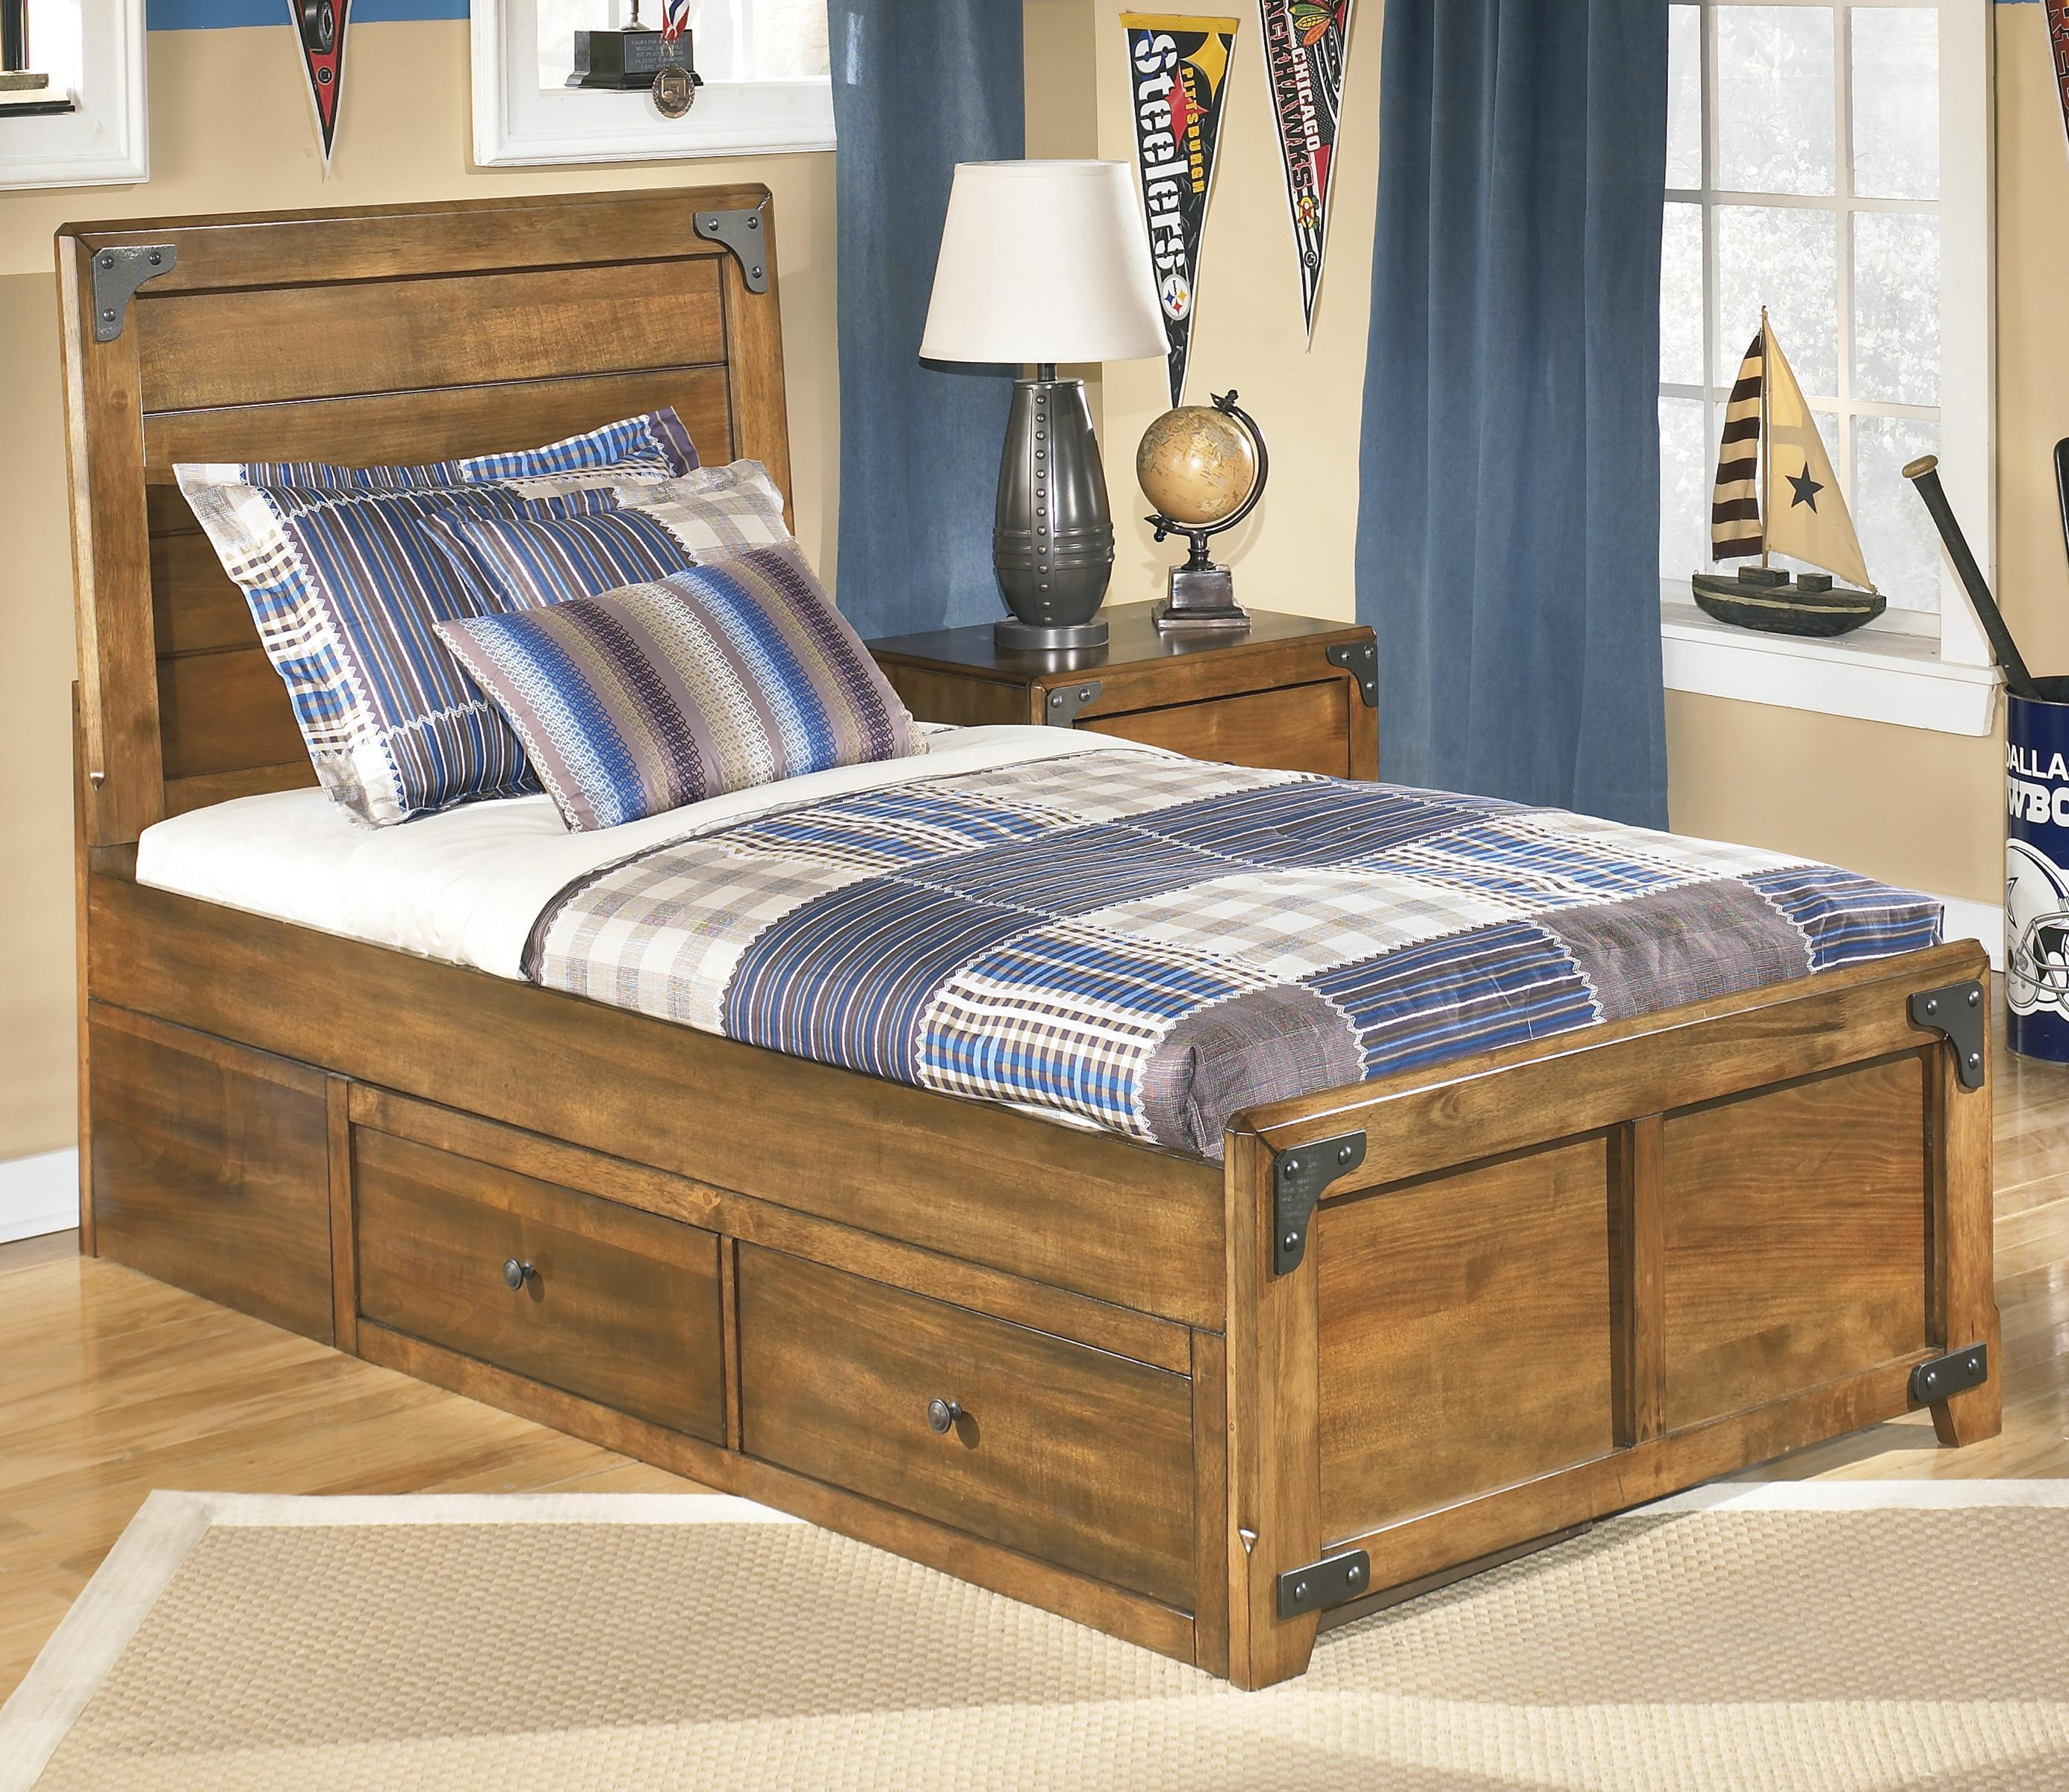 Ashley Furniture Twin Bed with Storage 2771 x 2400